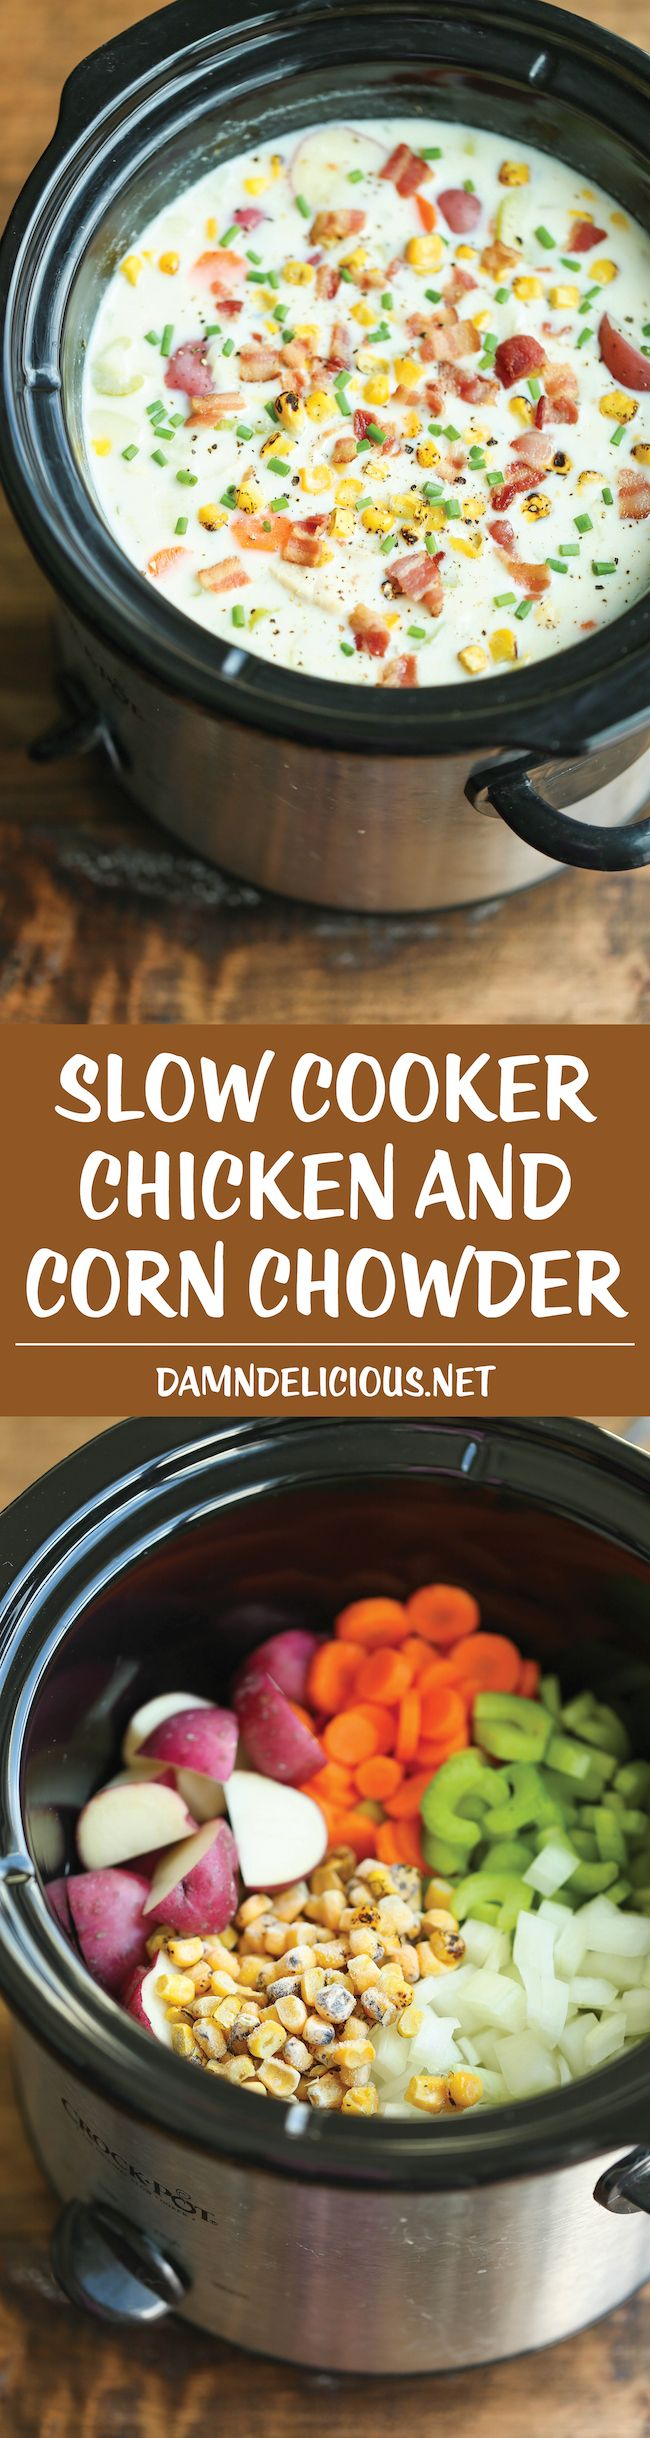 Slow Cooker Chicken and Corn Chowder - a hearty, comforting and creamy soup, made right in the crockpot. Yum!